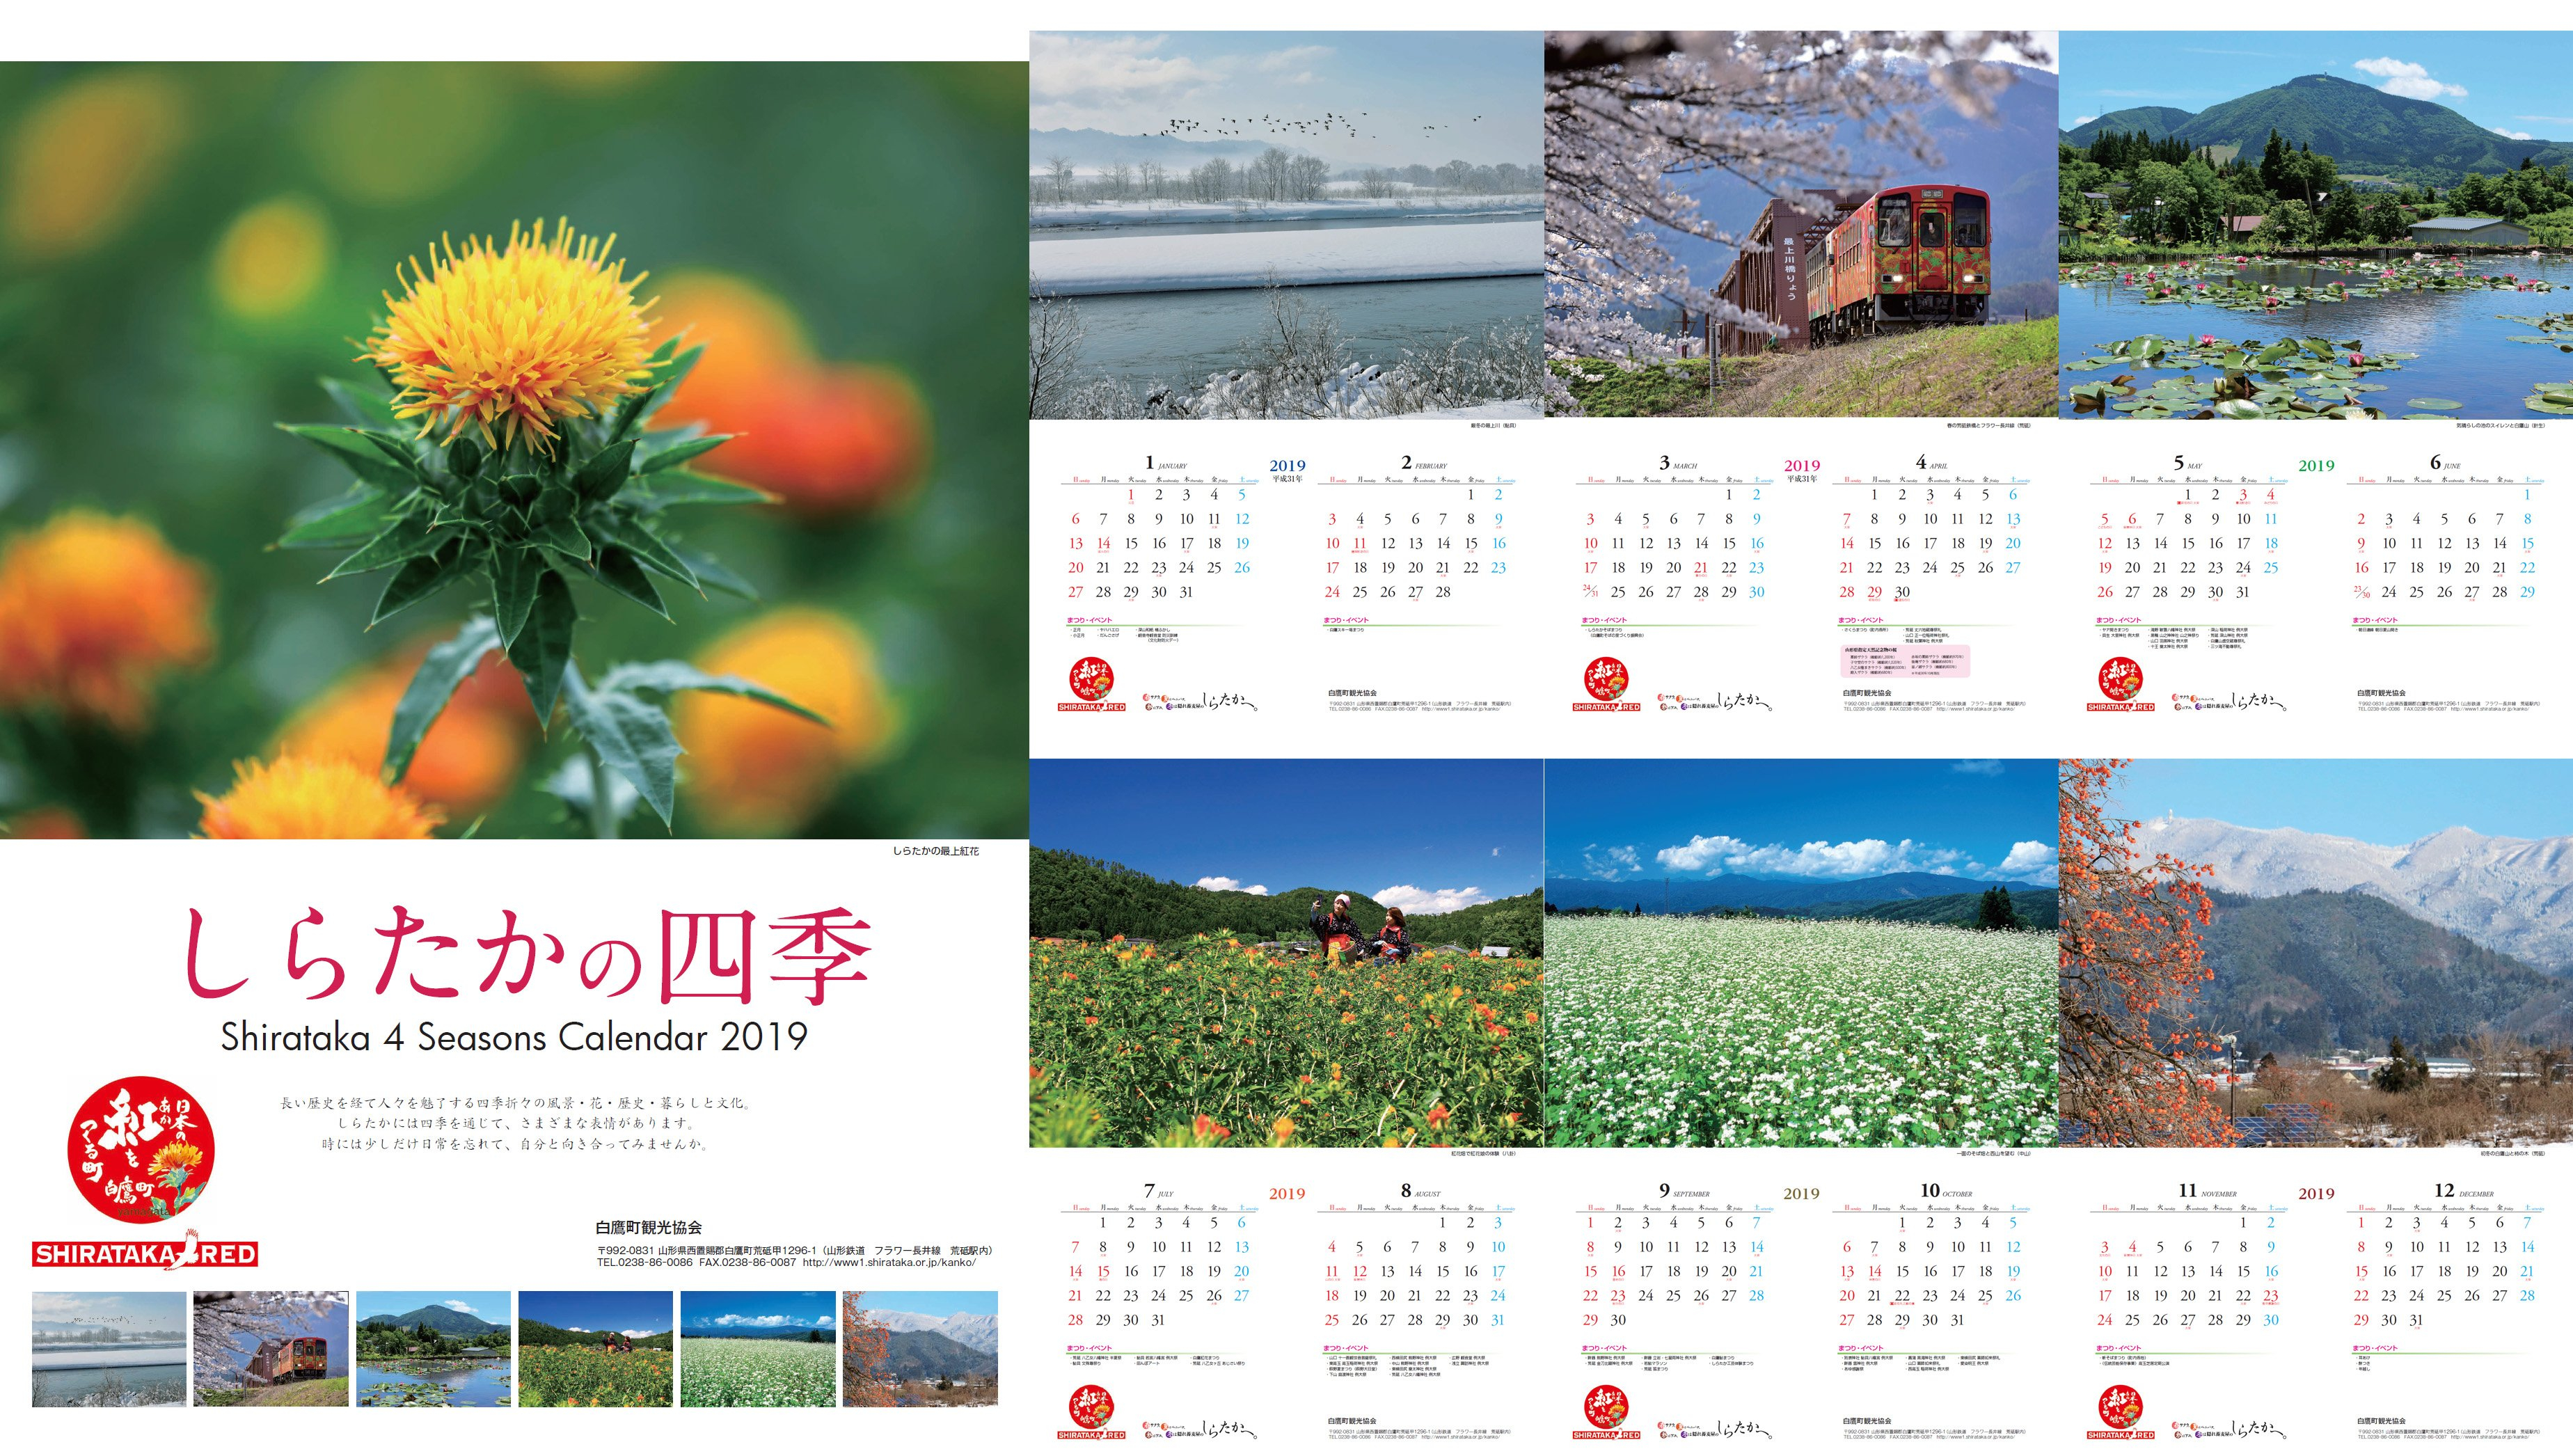 It Became Sold Out] News Of Shiratakano Four Seasons Calendar 2019 4 Seasons Calendar 2019